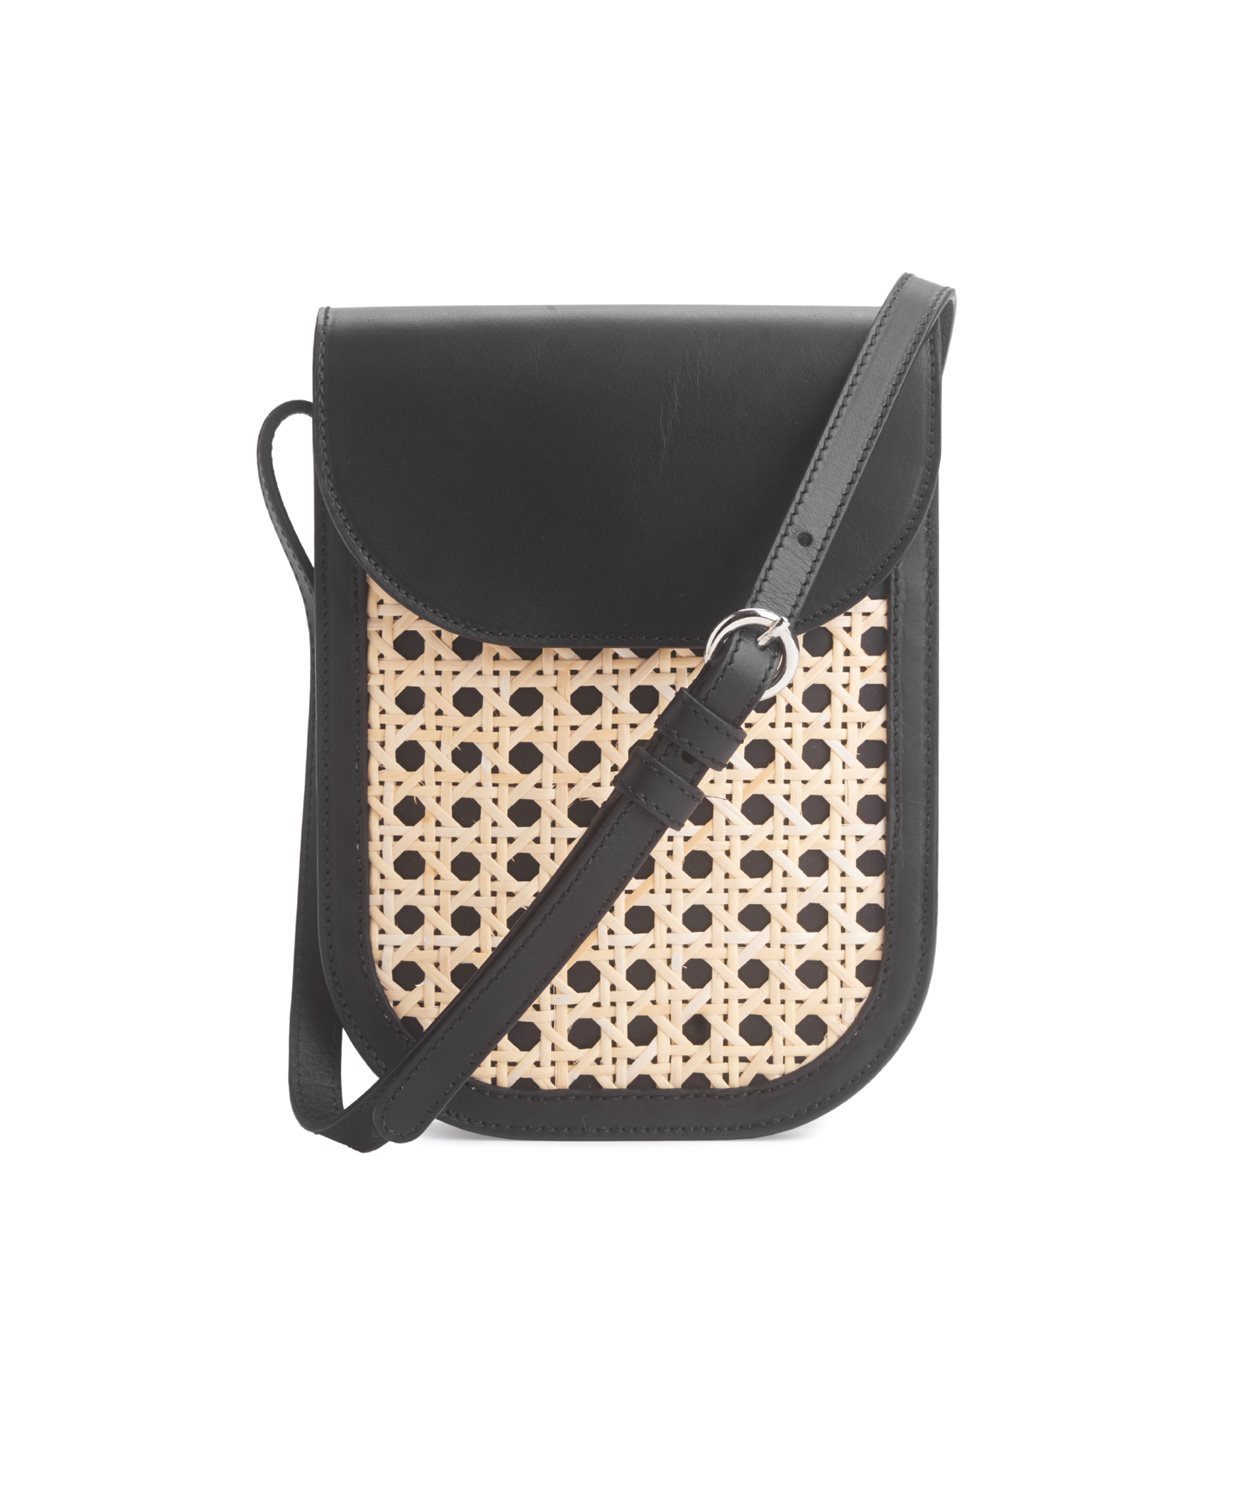 Palmgrens - EO Phone Bag Svart - Genuine handcrafted leather since 1896 35895c8be2ab6